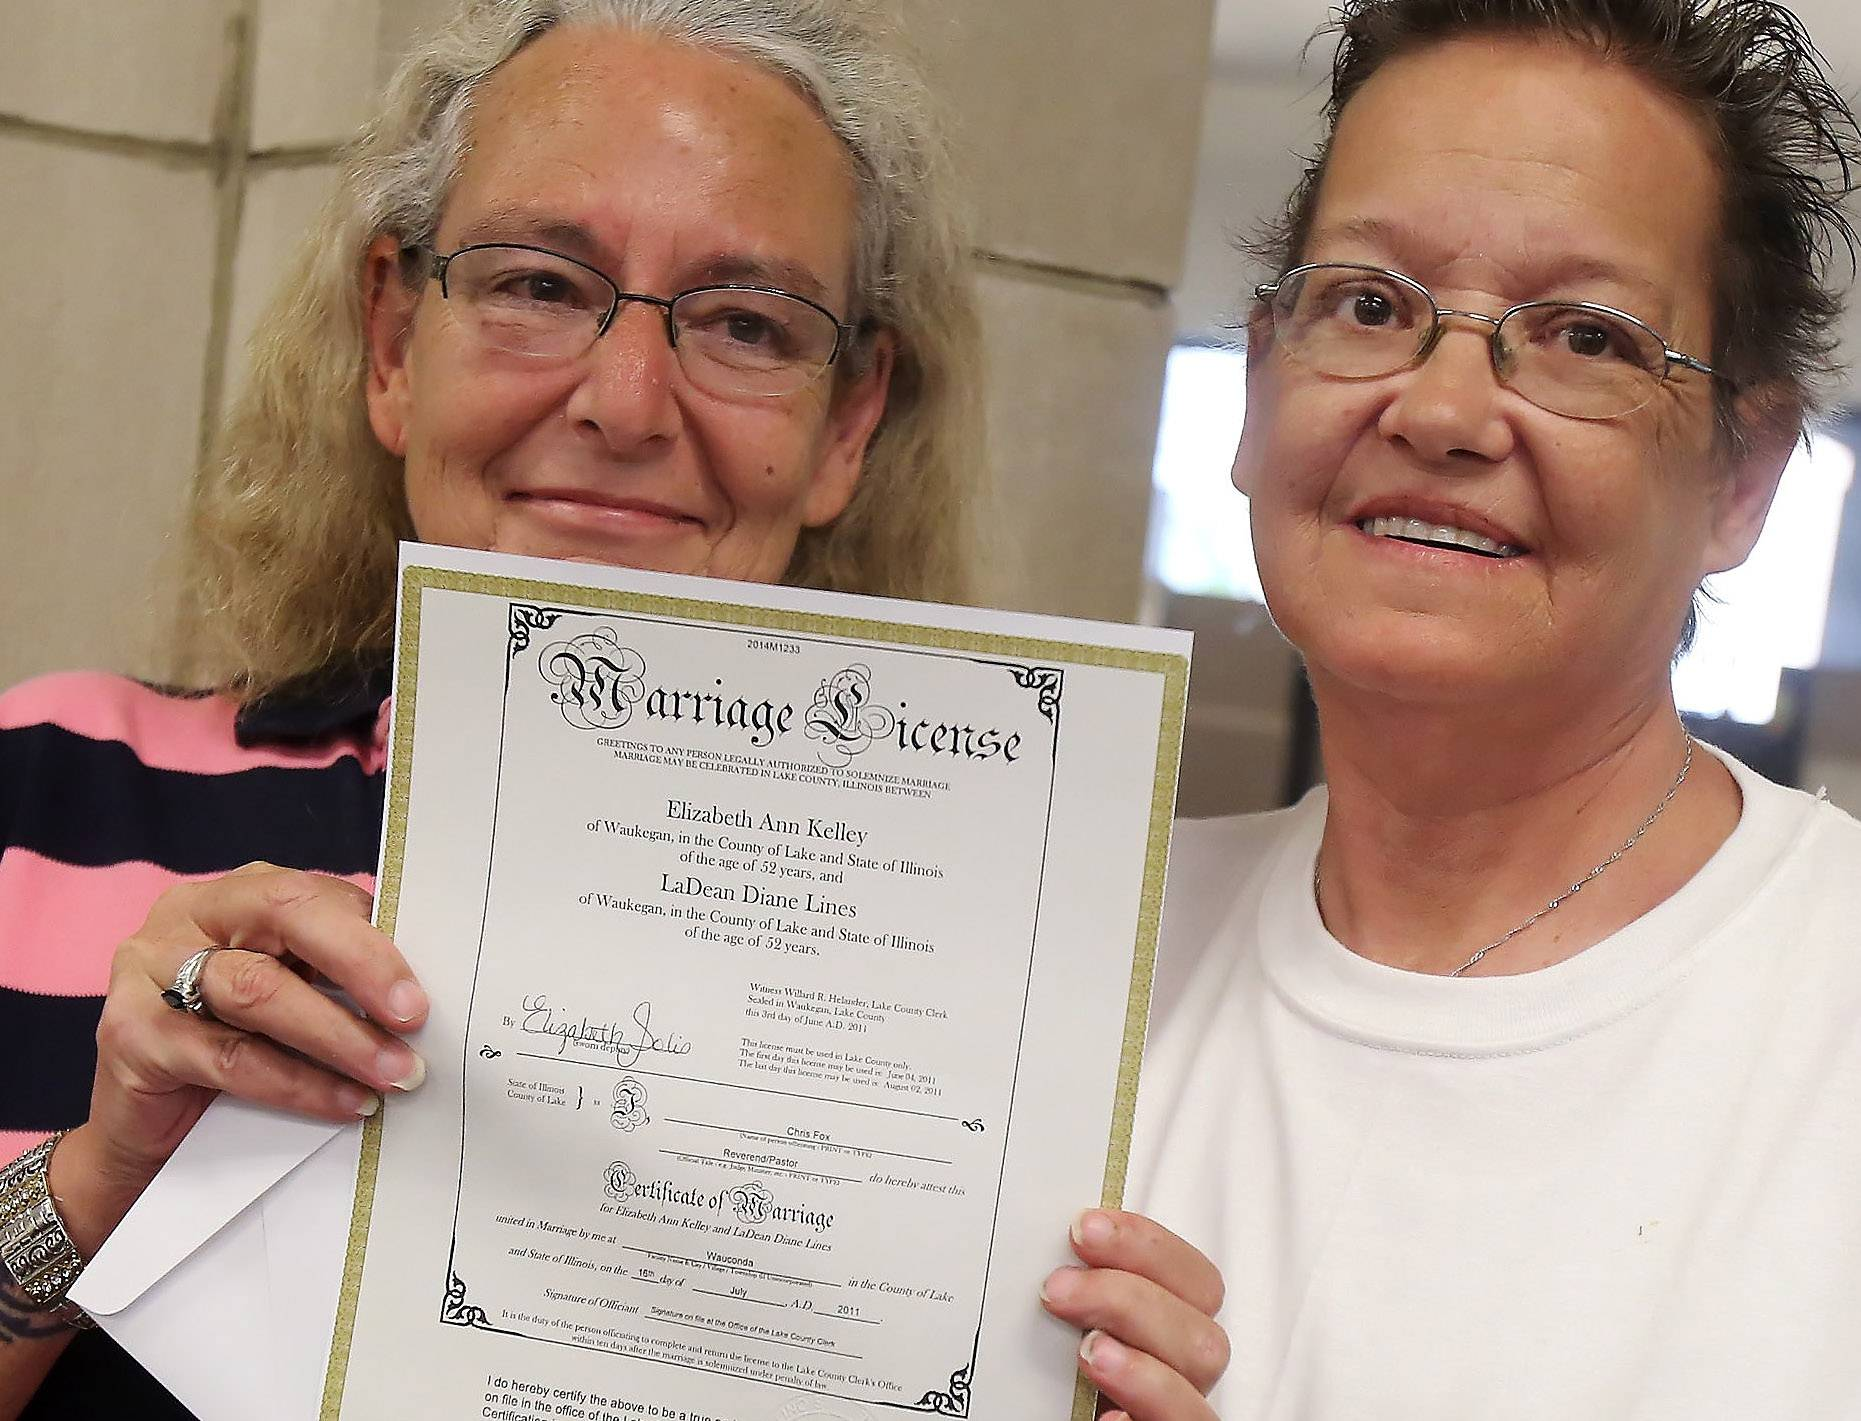 LaDean Lines and Beth Kelley hold up their marriage license after being first in line as same-sex couples received marriage licenses Monday at the Lake County clerk's office in Waukegan. The law legalizing same-sex marriages in the state of Illinois became effective on Sunday.